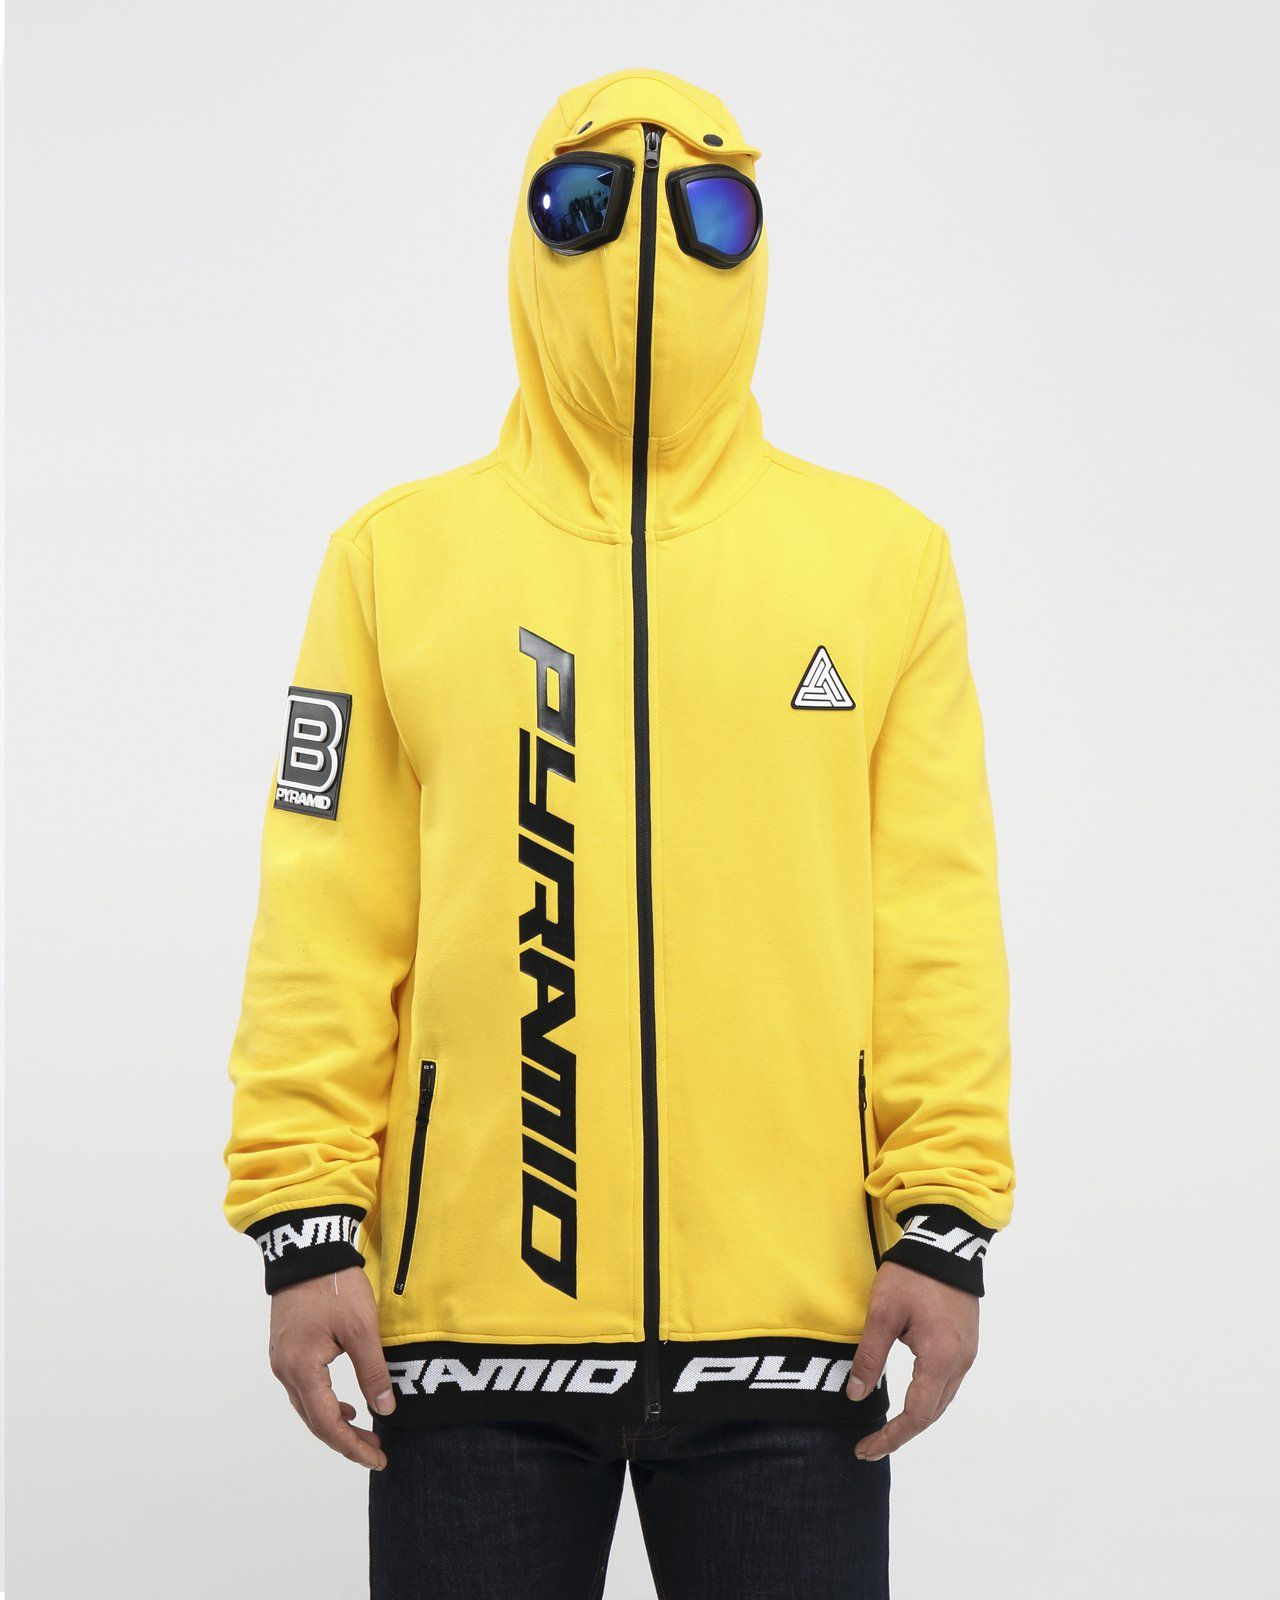 065fe771 Goggles zip up jacket - s / black in 2019 | Fresh Apparels and ...